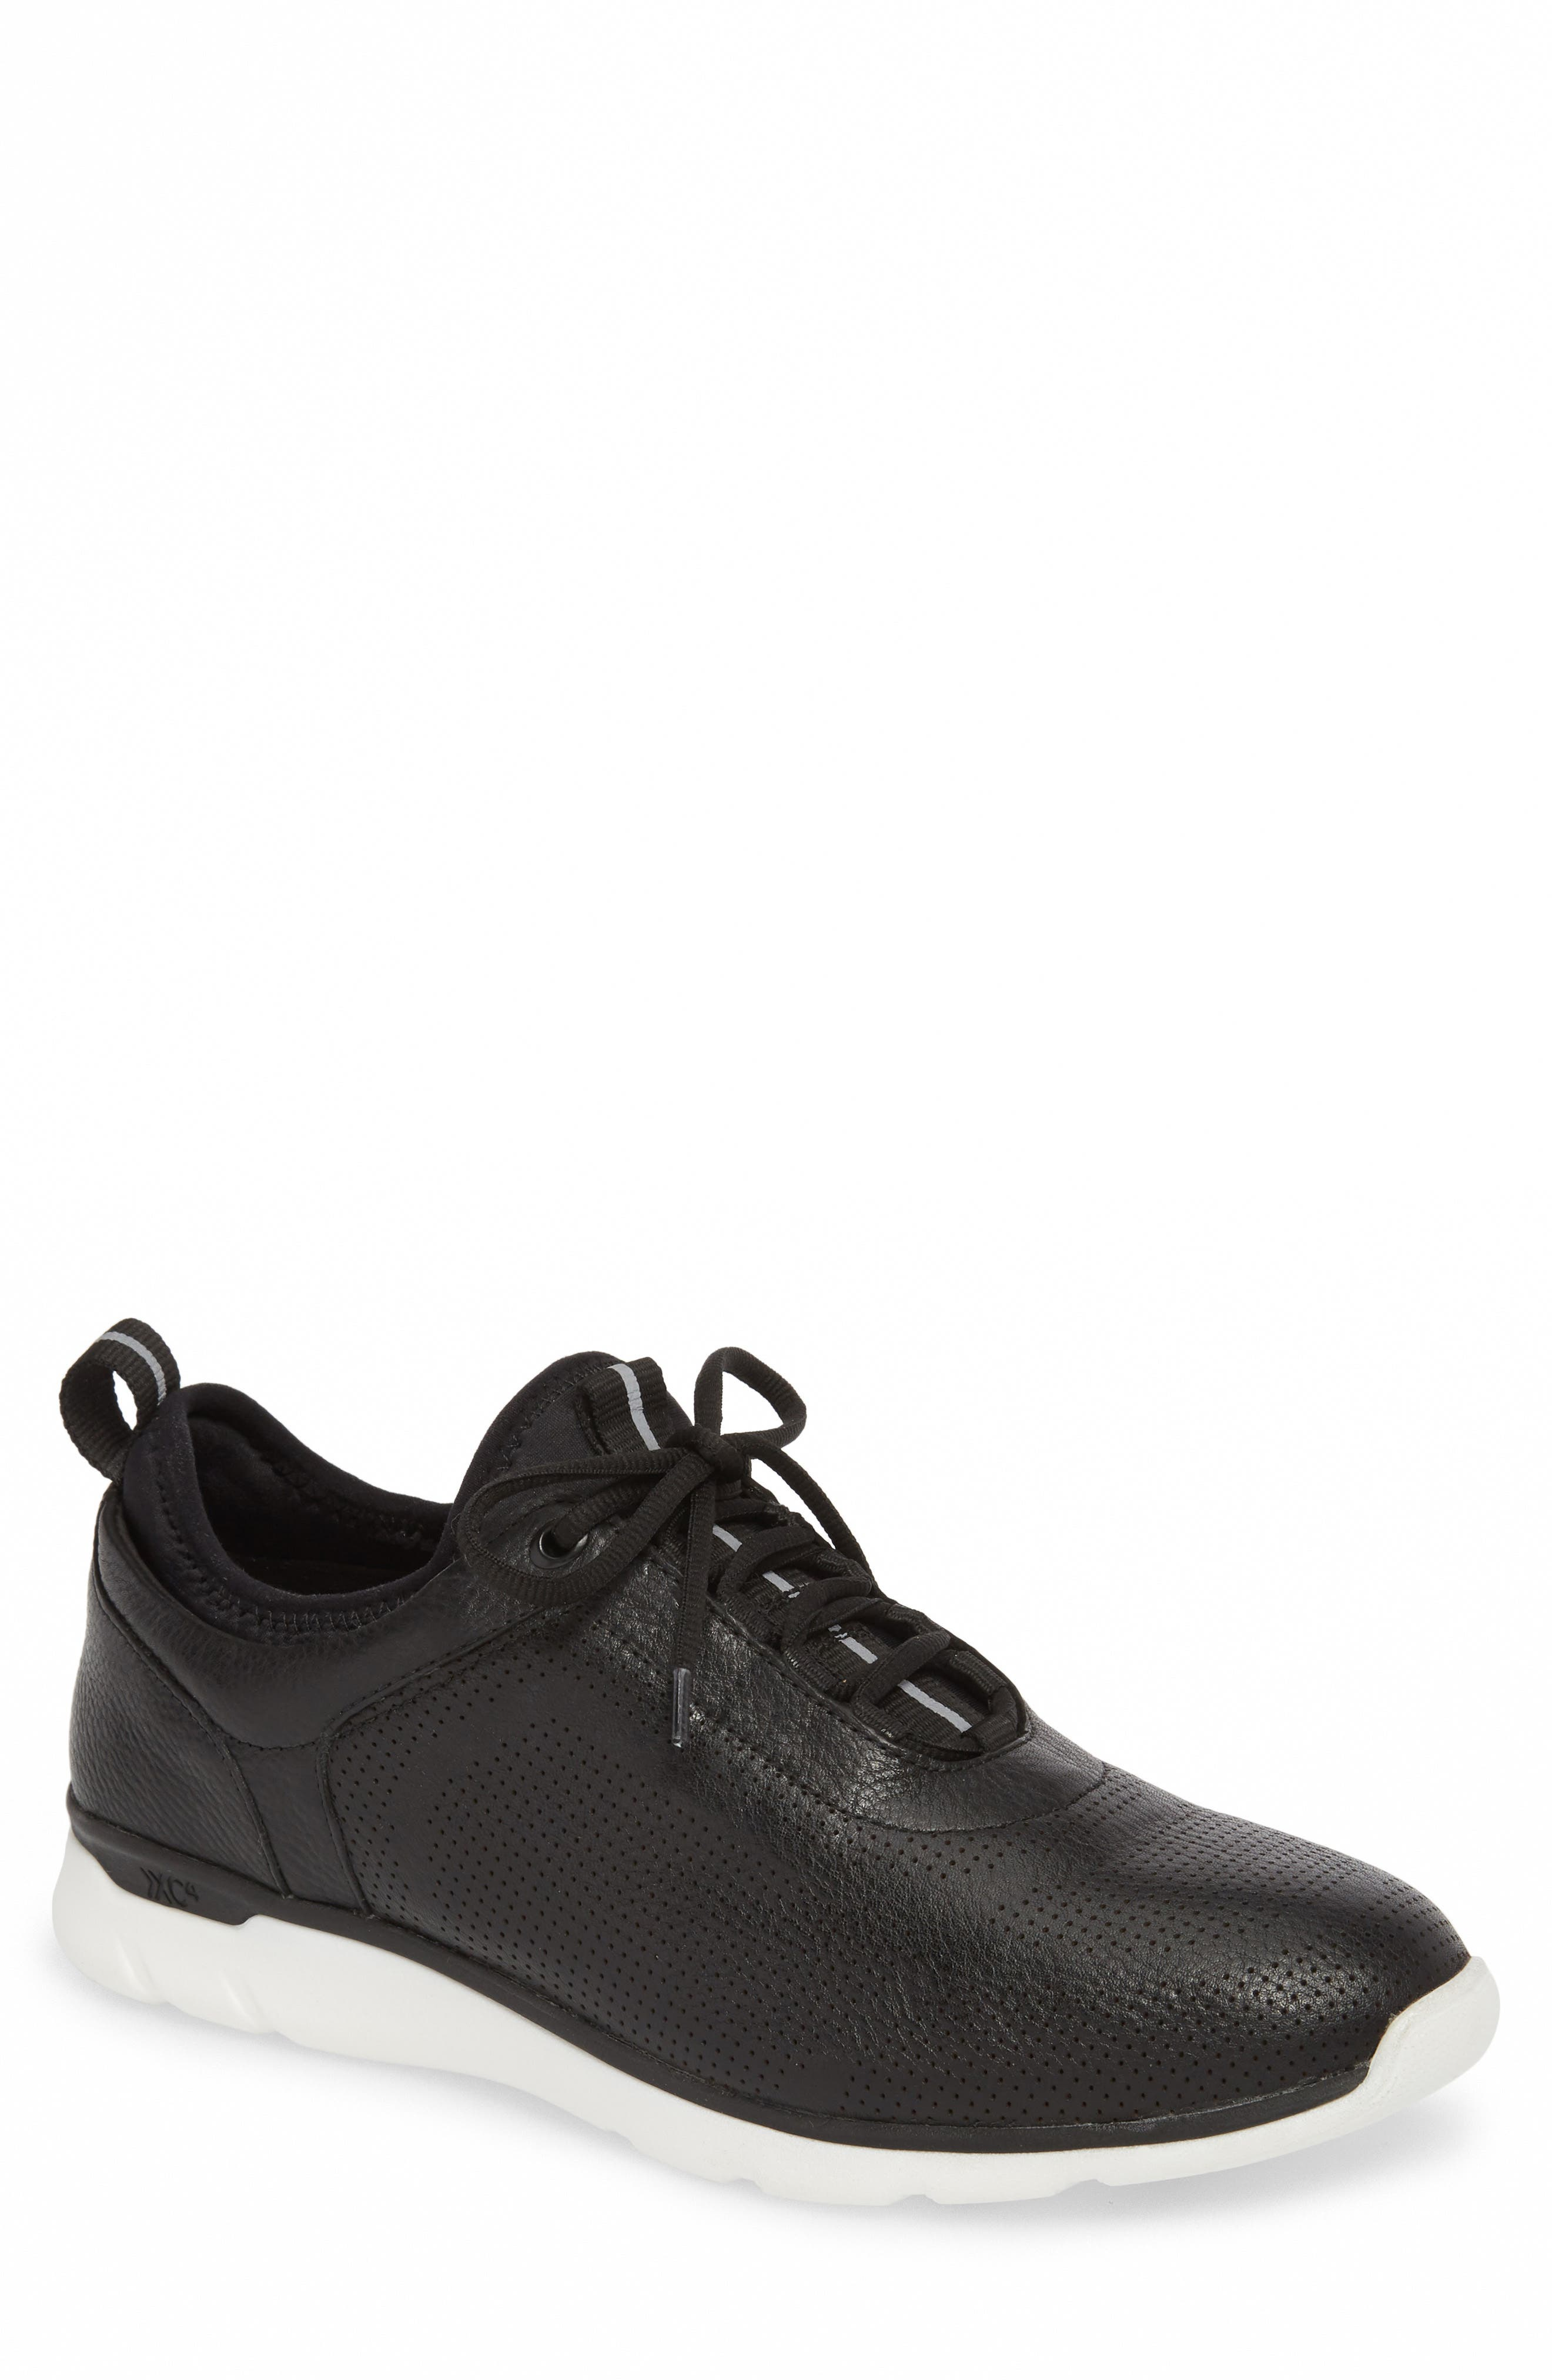 JOHNSTON & MURPHY, Prentiss XC4<sup>®</sup> Waterproof Sneaker, Main thumbnail 1, color, BLACK LEATHER